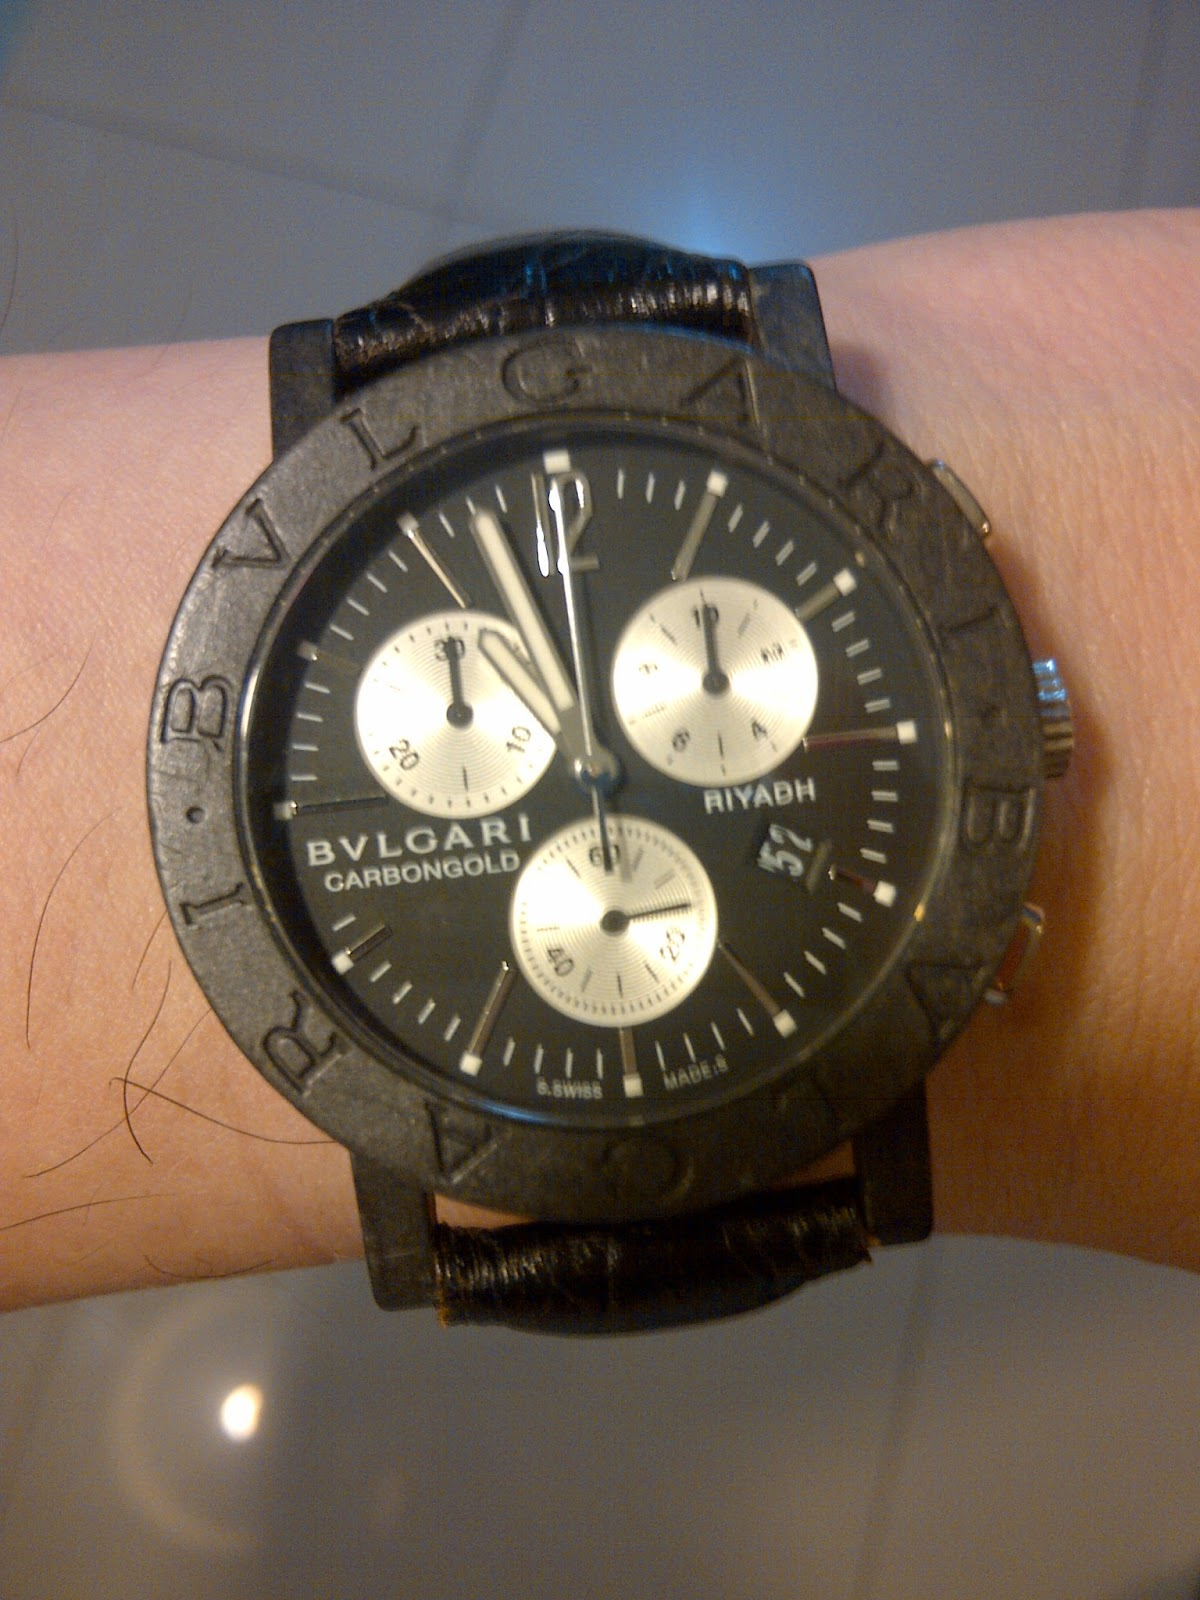 Lundby Kok Special Edition : BULGARI CARBON GOLD LIMITED EDITION (SOLD)  Jam tangan mewah second